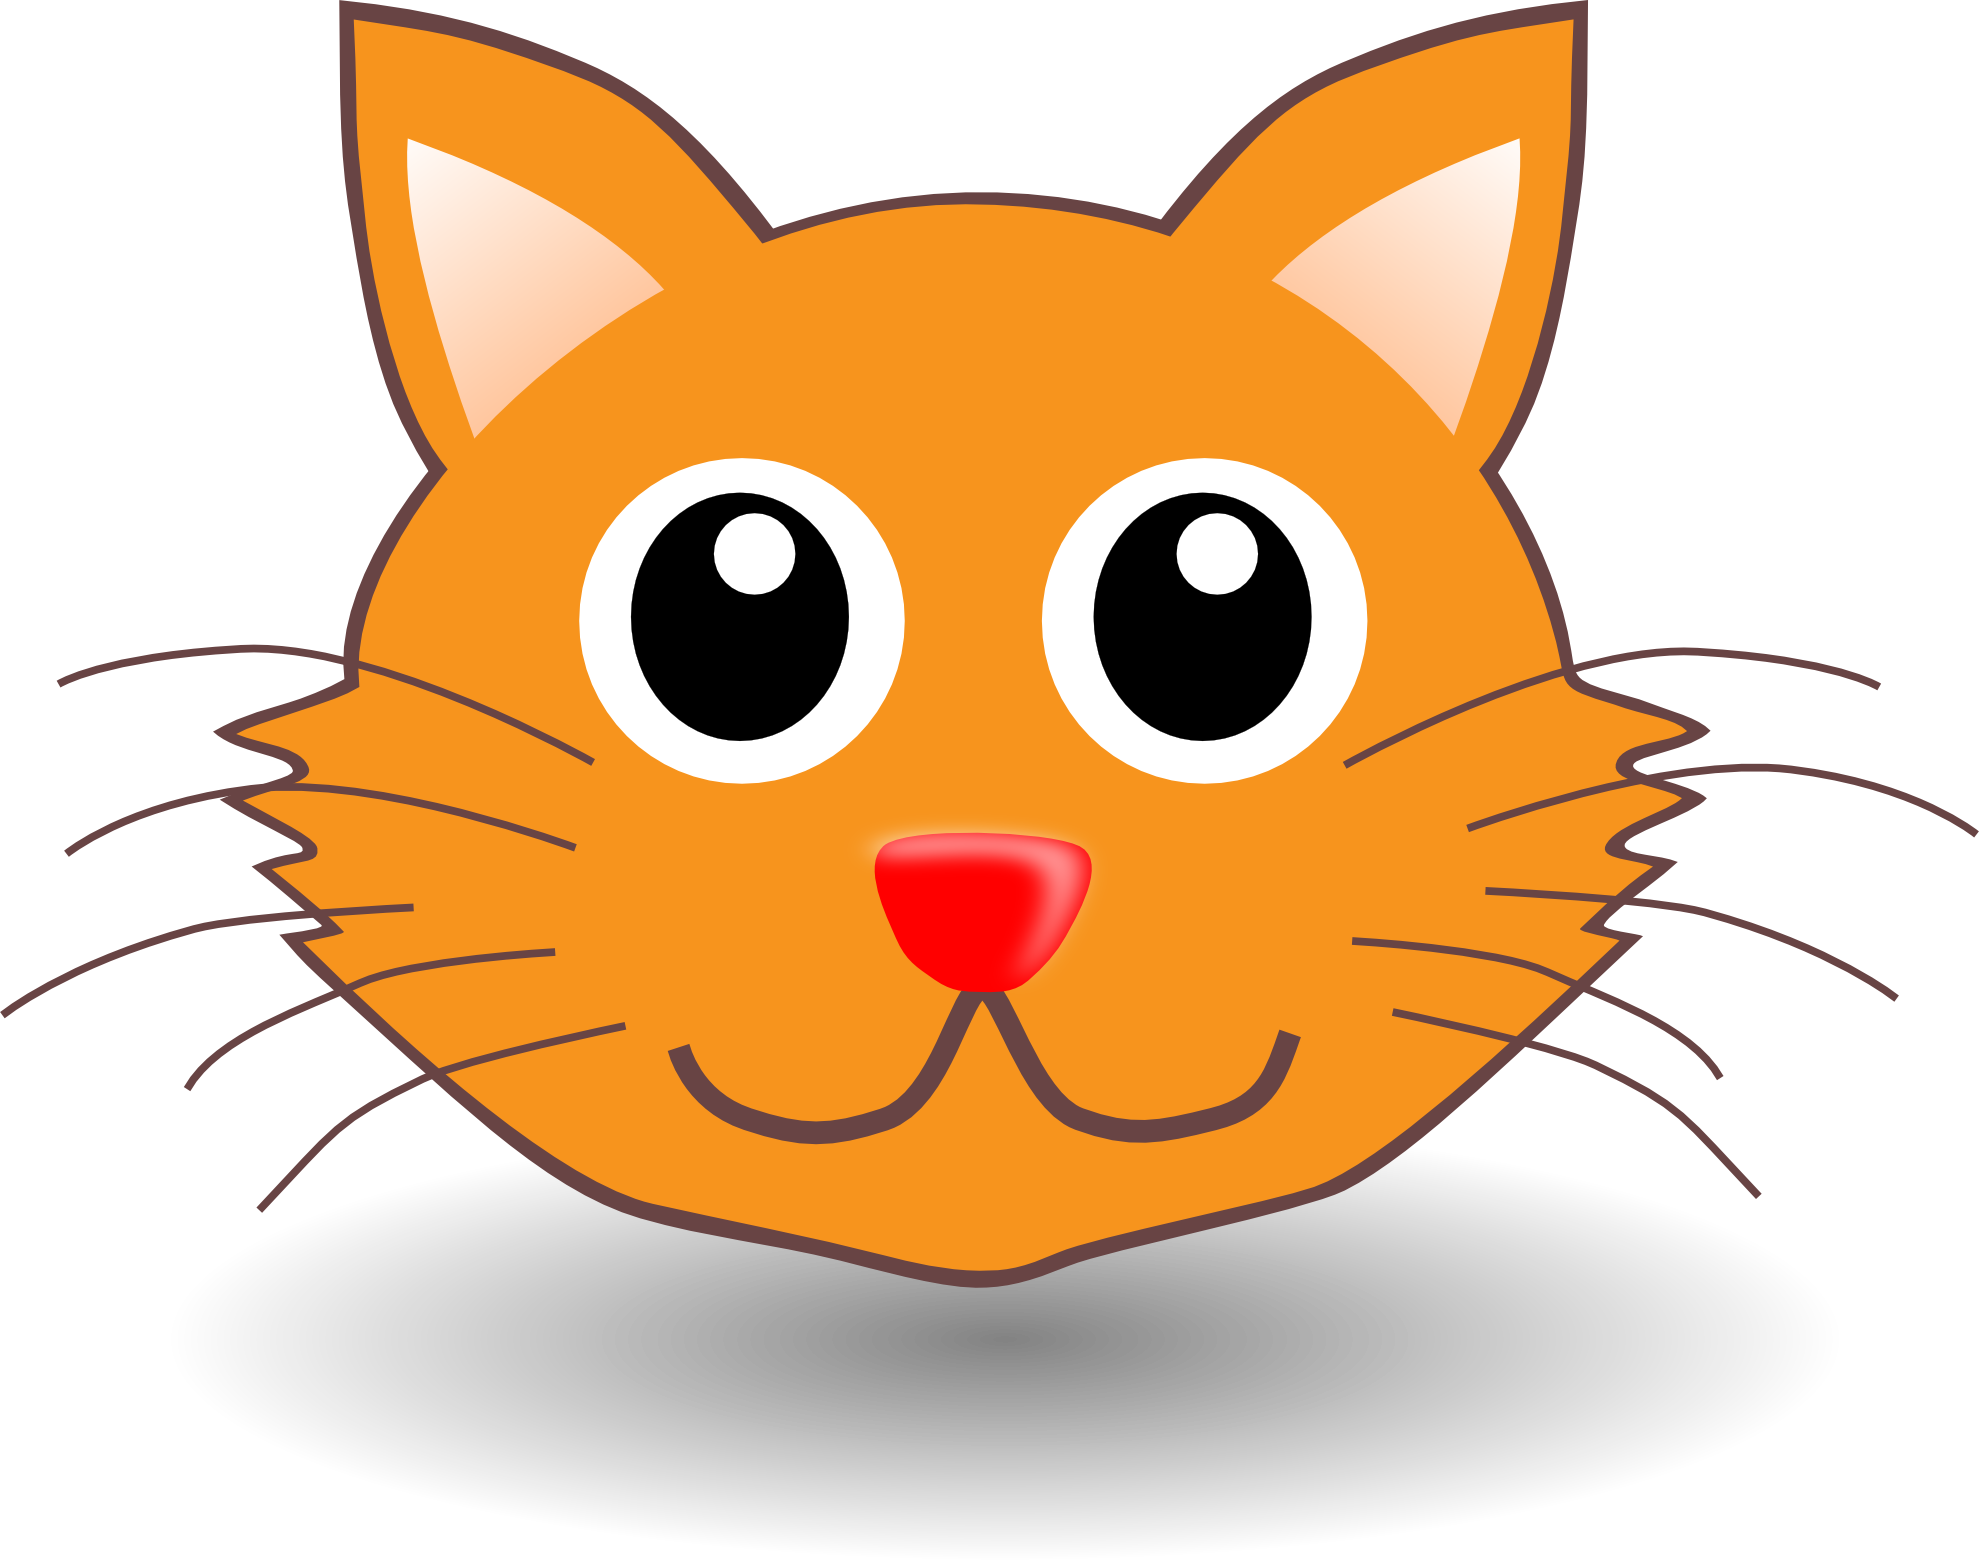 Sad cat face clipart vector transparent stock Free Cartoon Cat Face, Download Free Clip Art, Free Clip Art on ... vector transparent stock